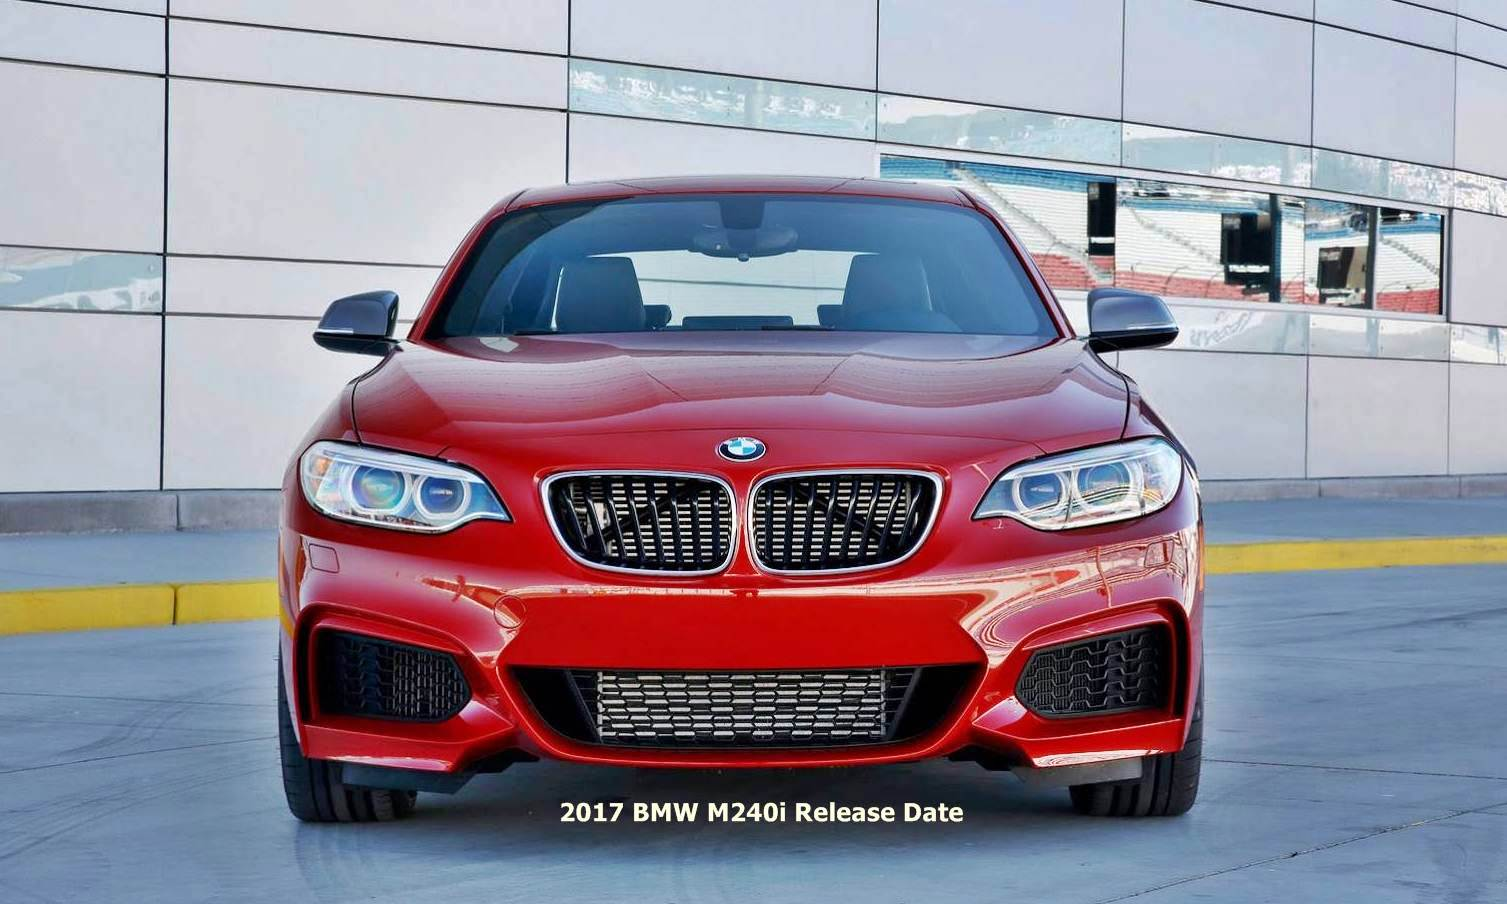 BMW M2 Release Date >> 2017 BMW M240i Release Date | Auto BMW Review